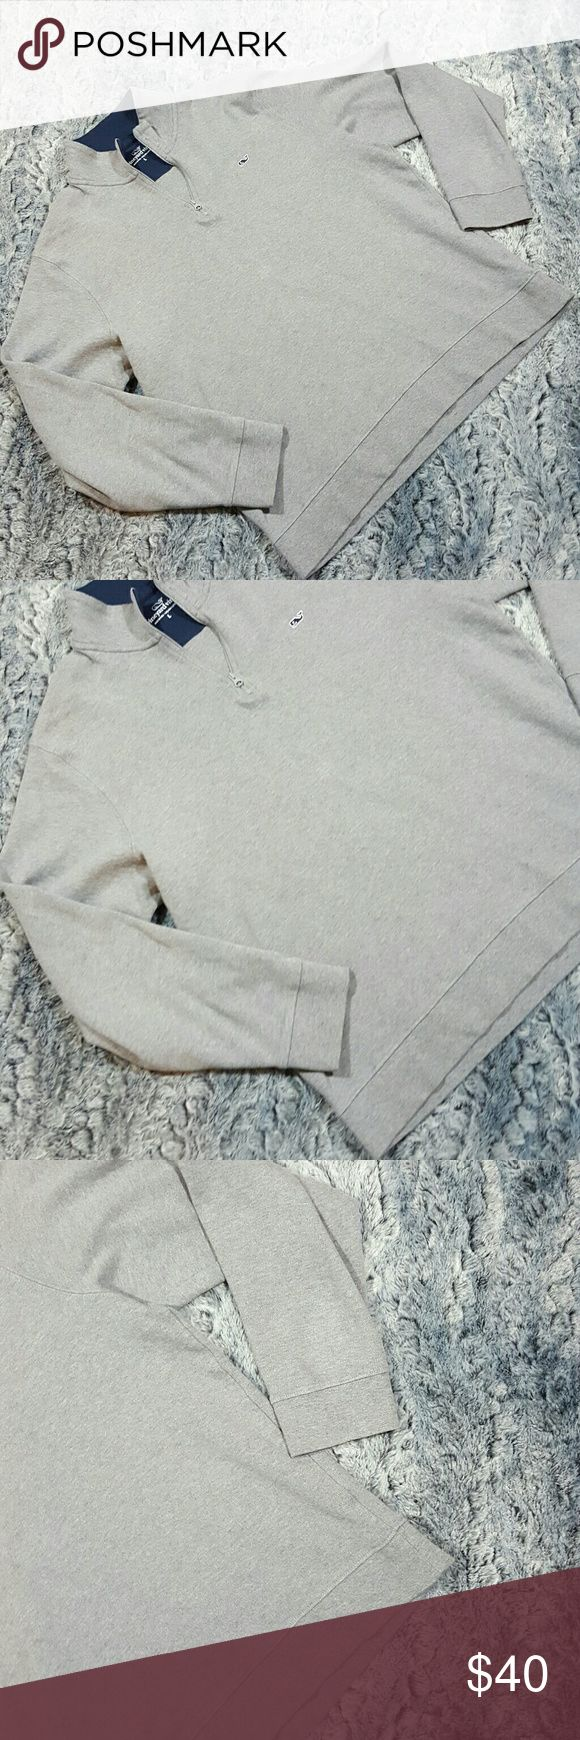 """Vineyard Vines 1/4 Zip Sweater Large Mens Vineyard Vines Sweater Cotton 1/4 Zip Pullover Gray LS Mock Collar Sz Large  Gently used with no flaws, see photos   Material: 100% Pima cotton  Measurements: 24"""" armpit to armpit  24"""" waist while laying flat  27"""" in length   A01 Vineyard Vines Sweaters"""